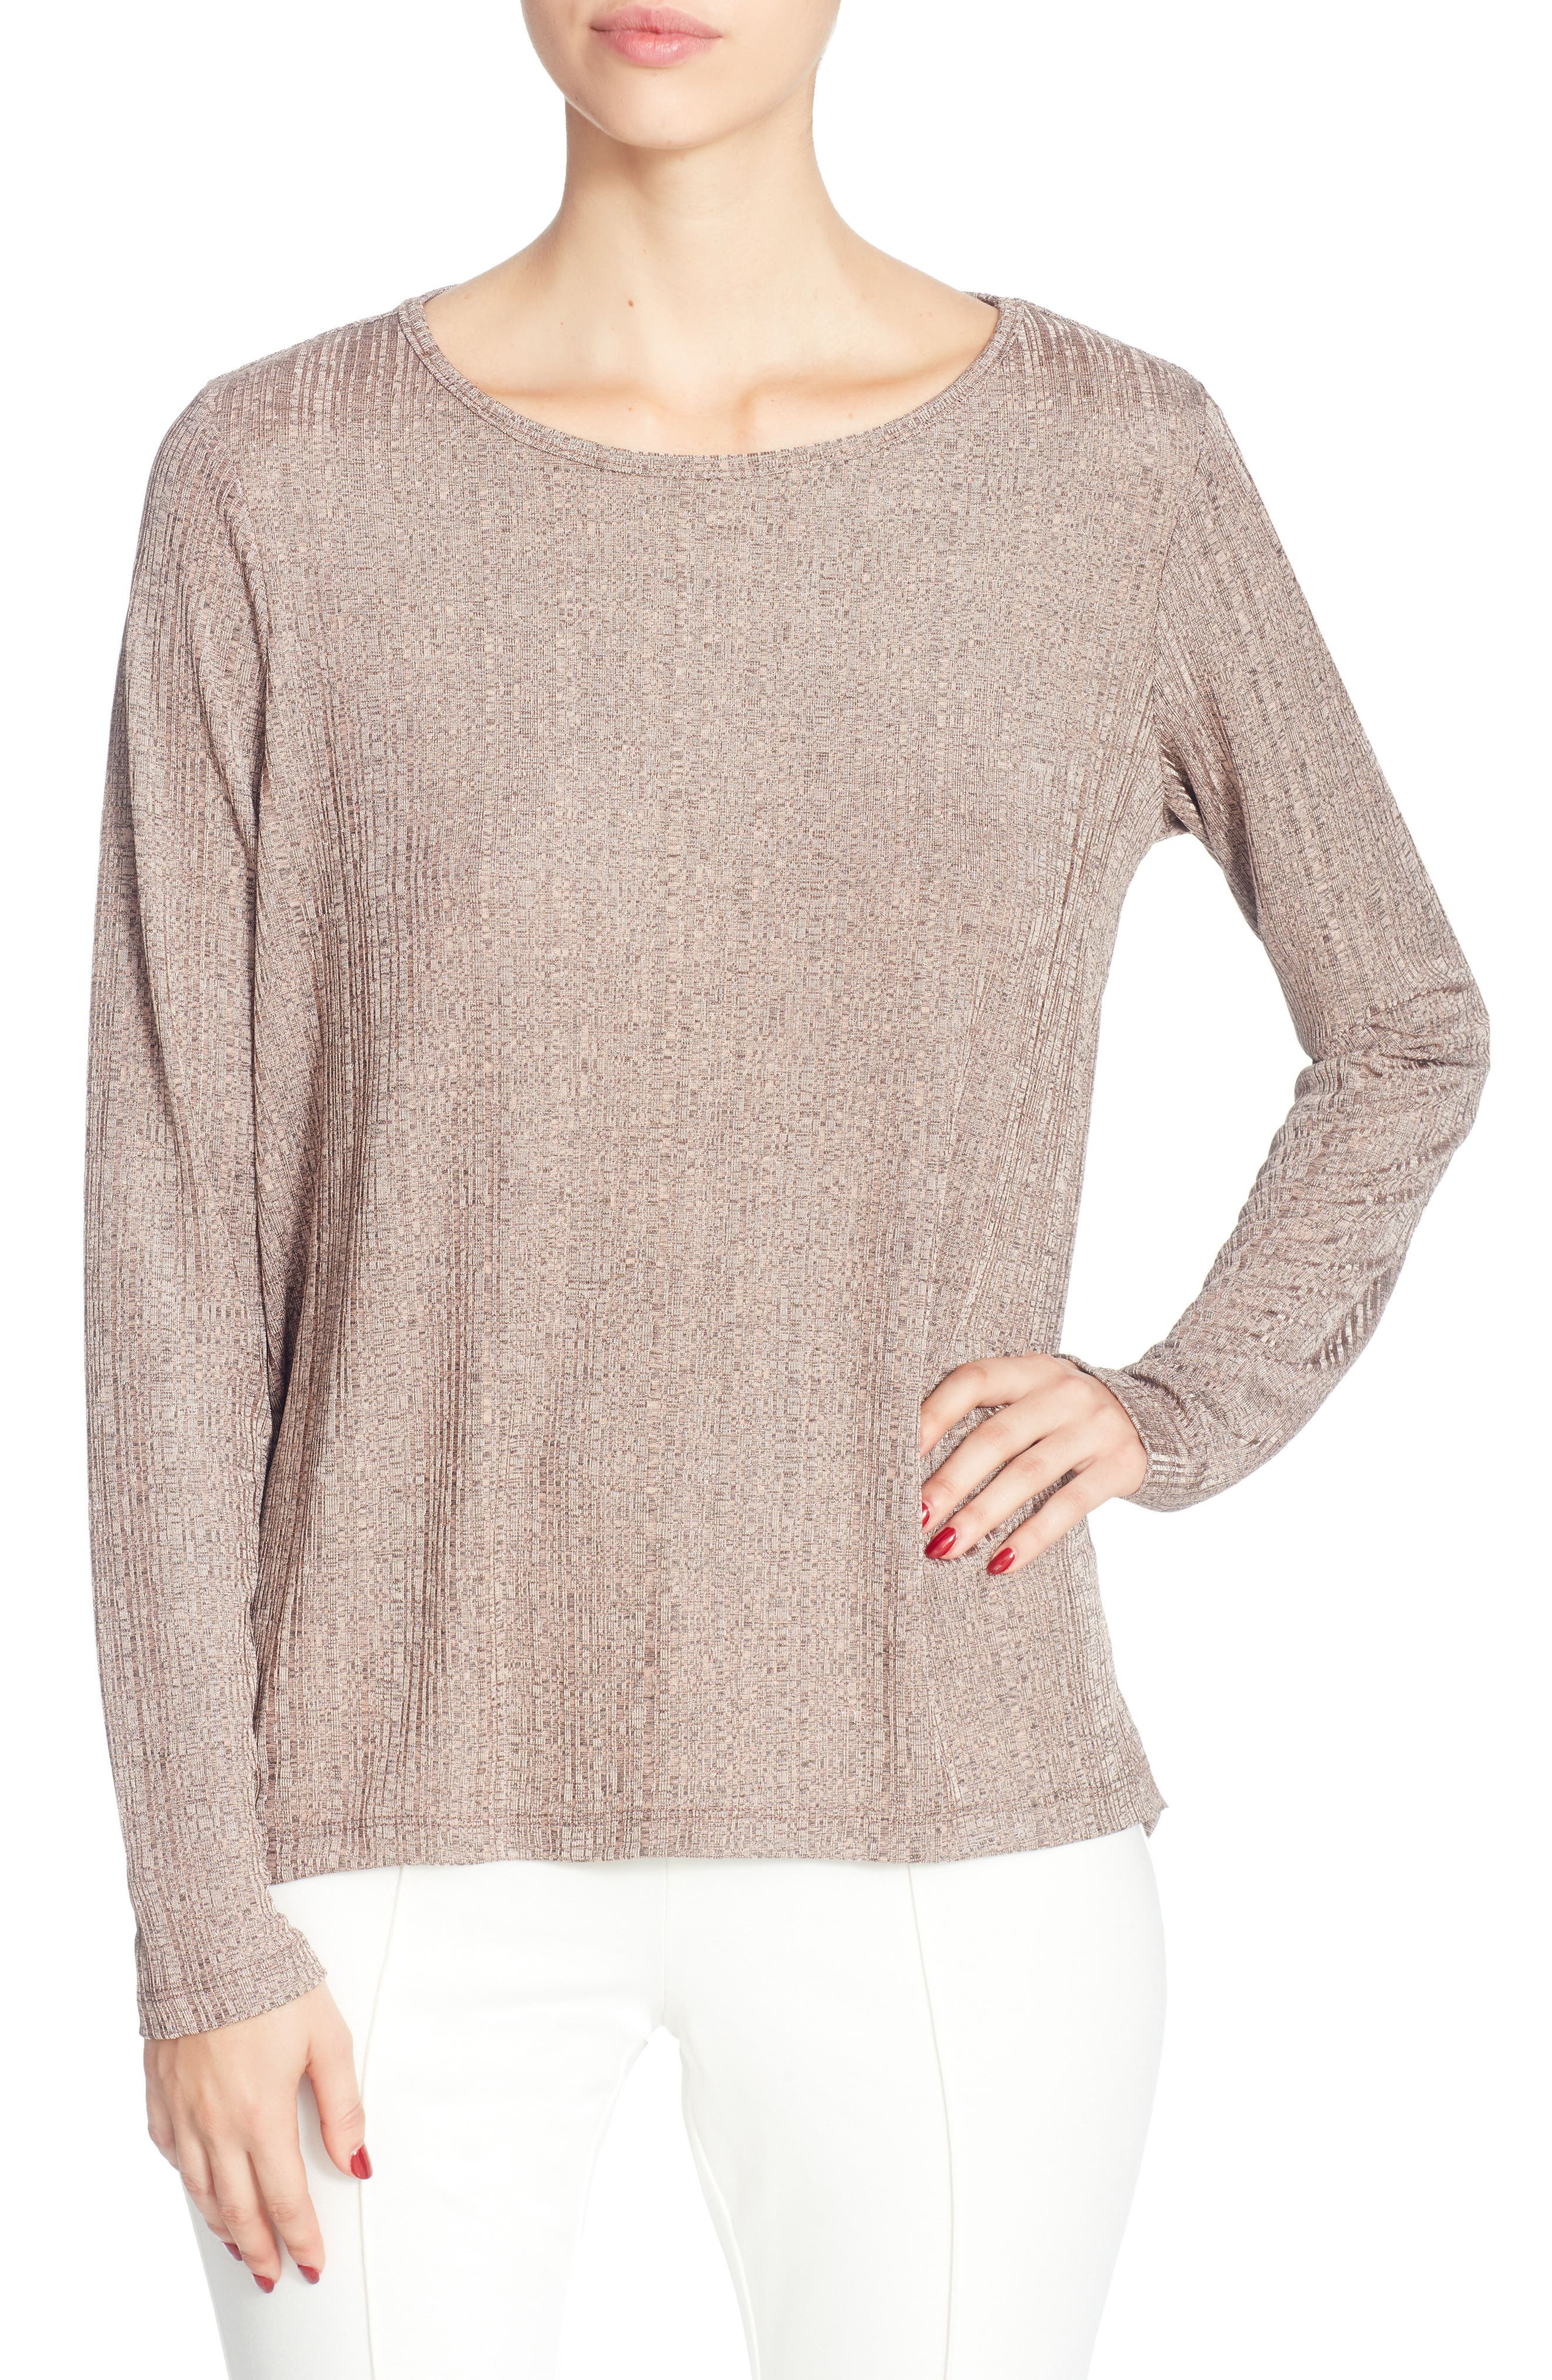 Remi Metallic Knit Top,                         Main,                         color, Neutral Pink